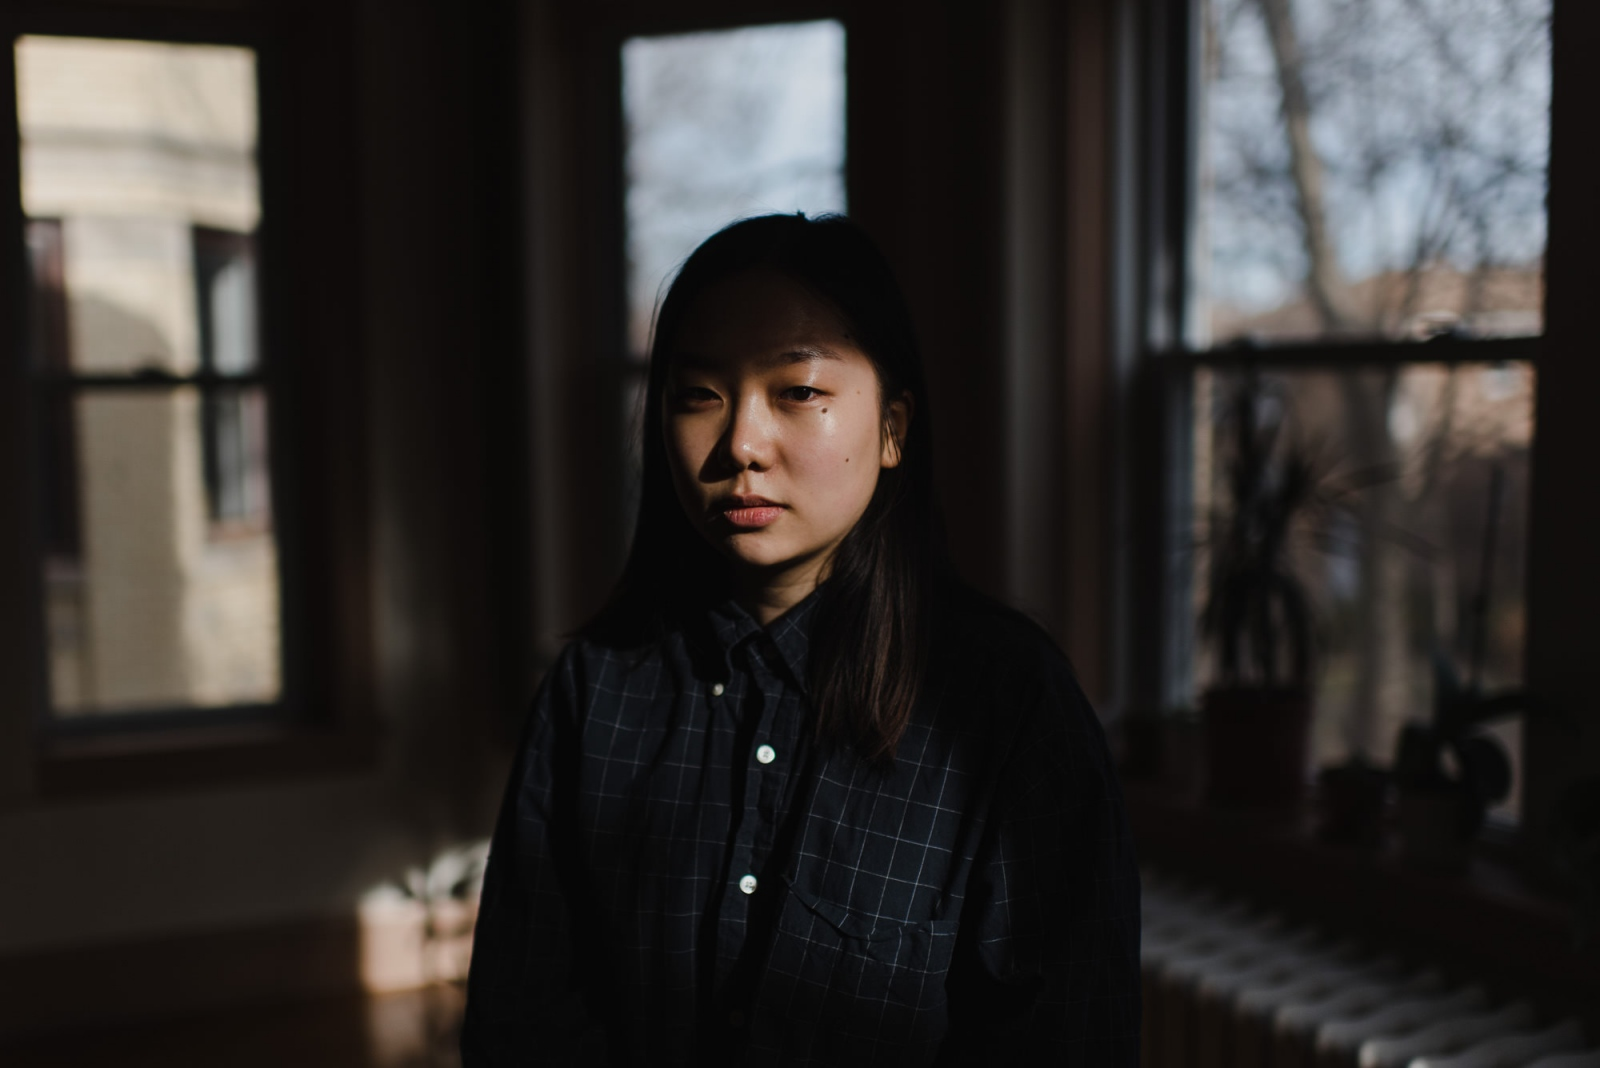 Josephine Wang. Chicago, IL. 2017